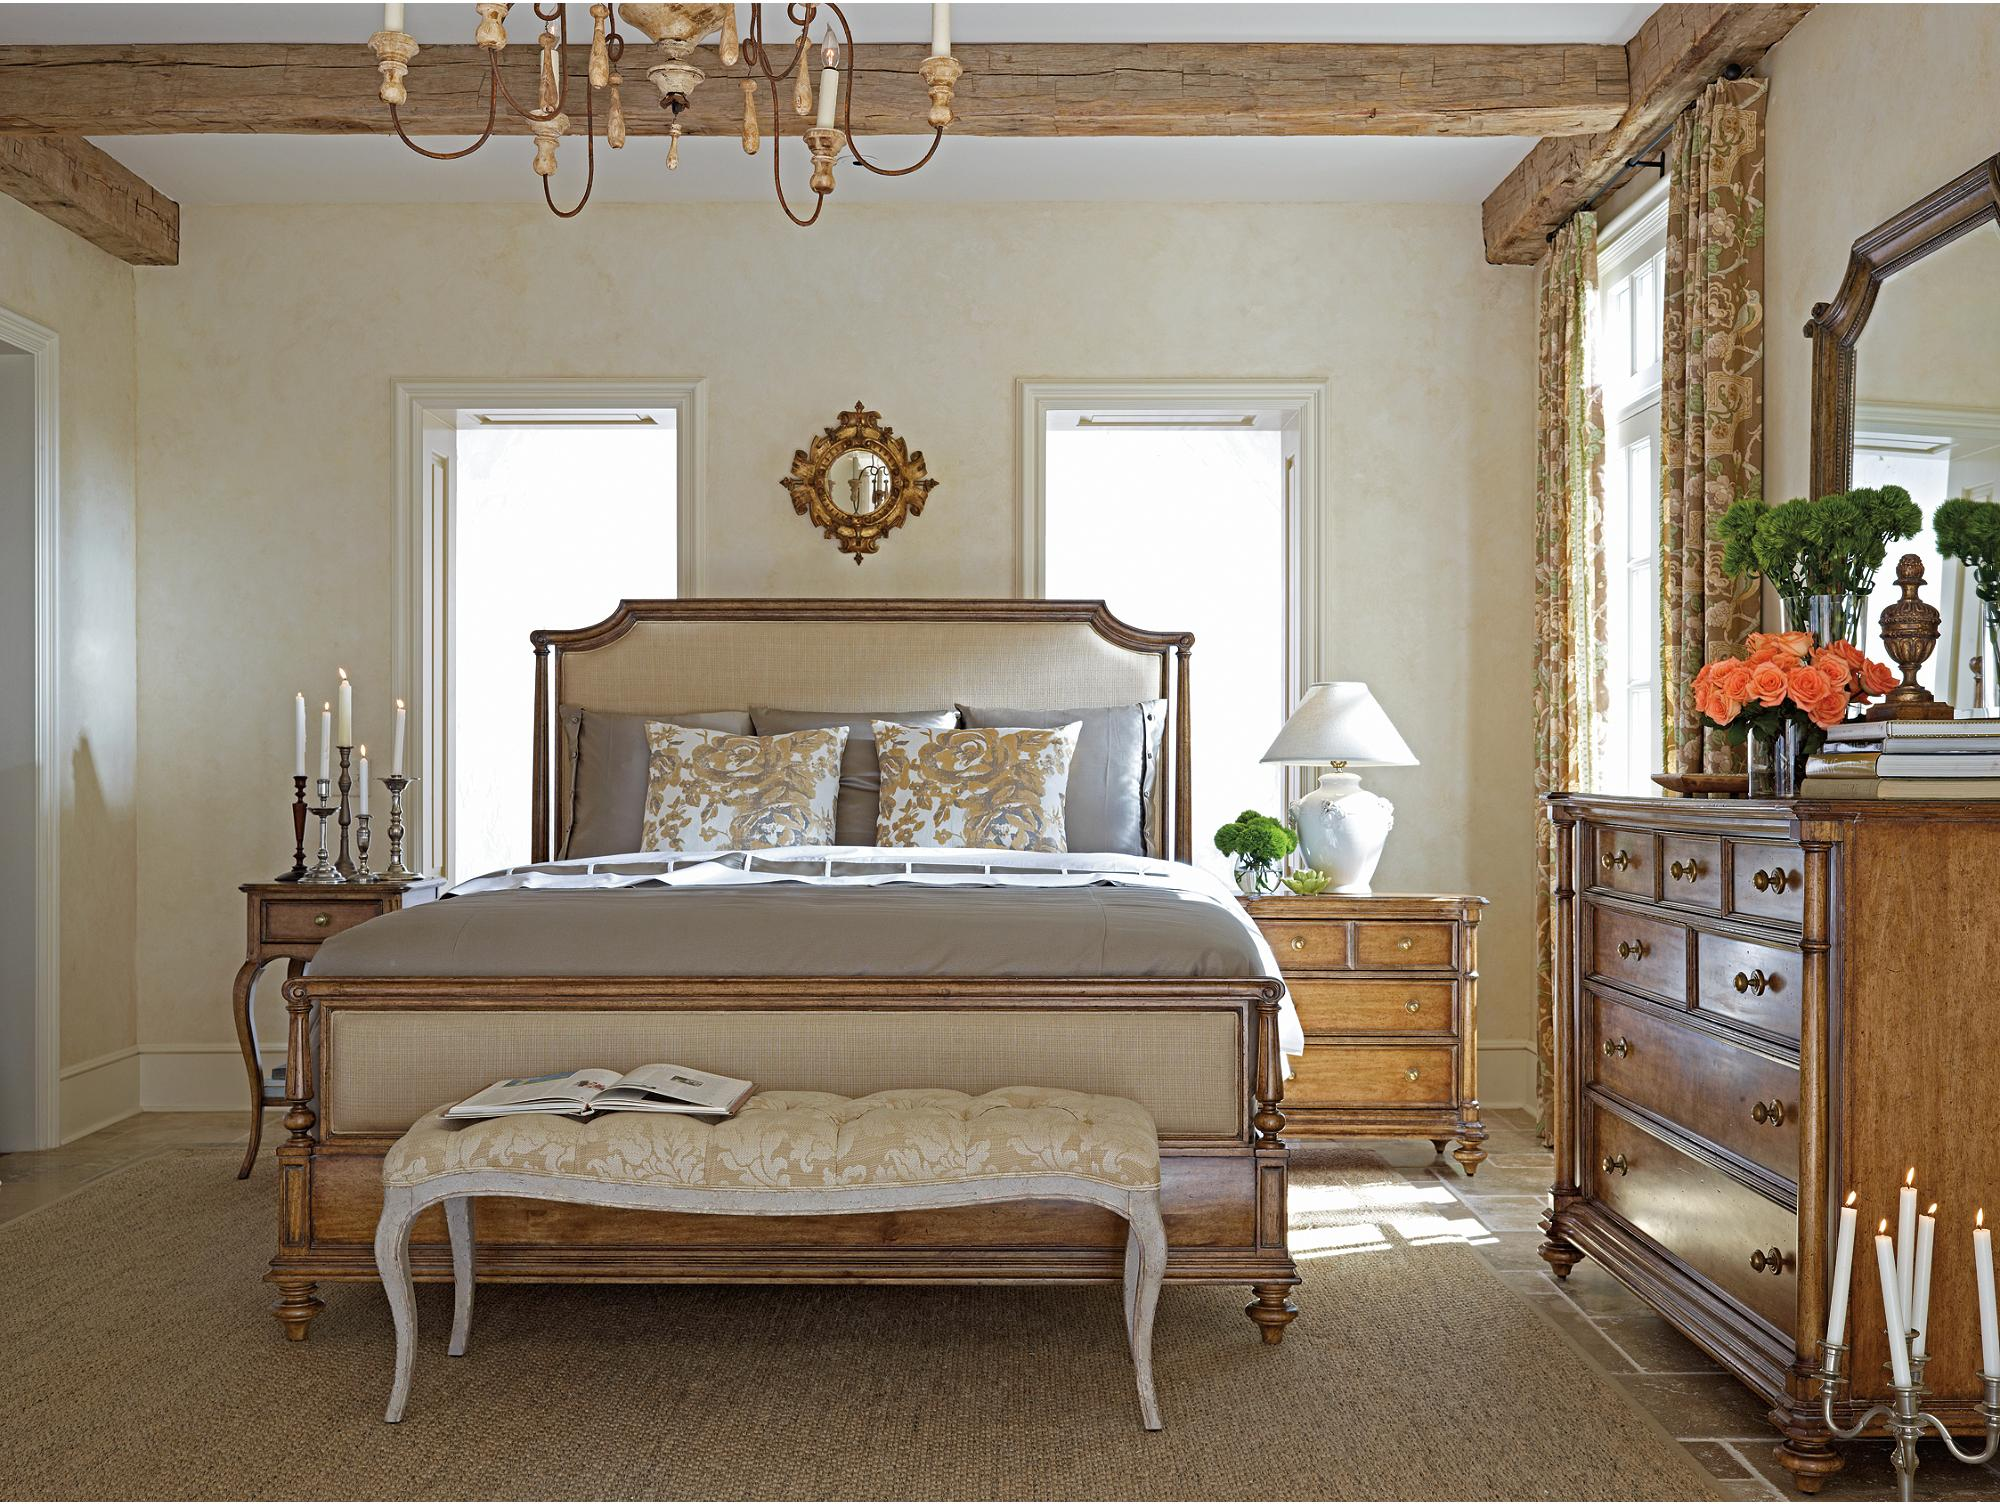 Stanley Furniture Arrondissement California King Bedroom Group - Item Number: 222-6 CK Bedroom Group 1